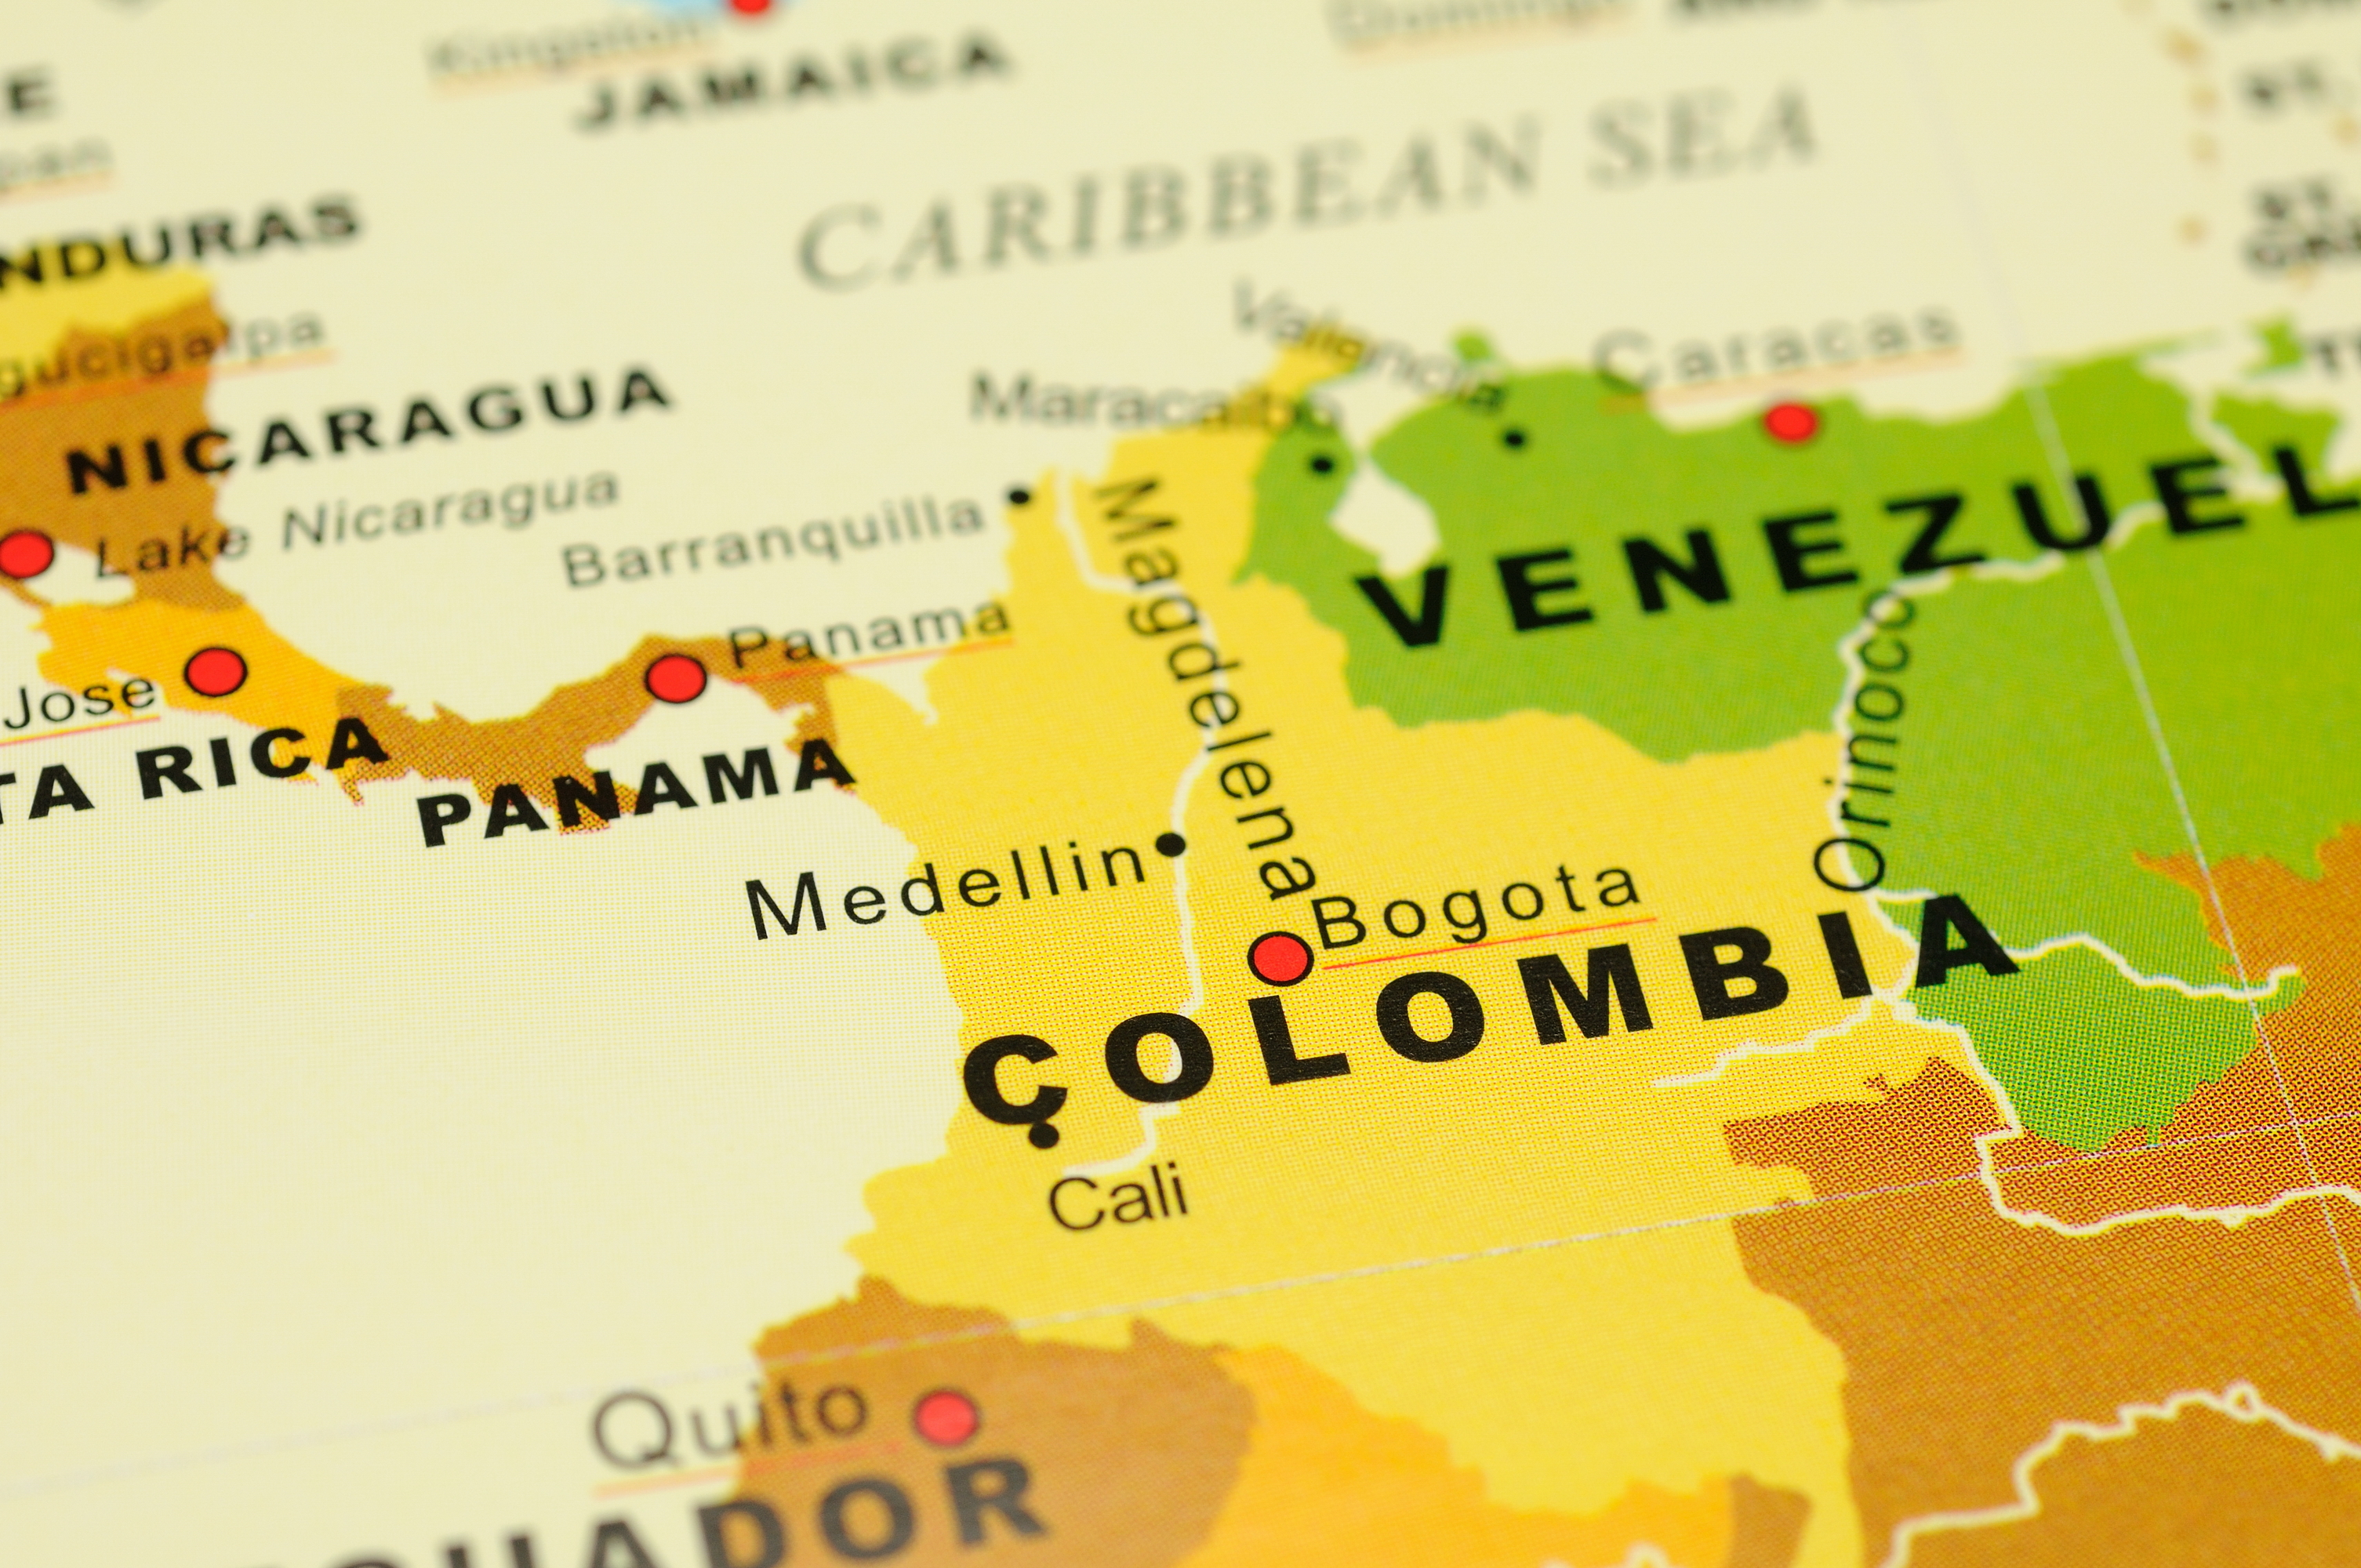 Colombia doesn't like cryptocurrencies